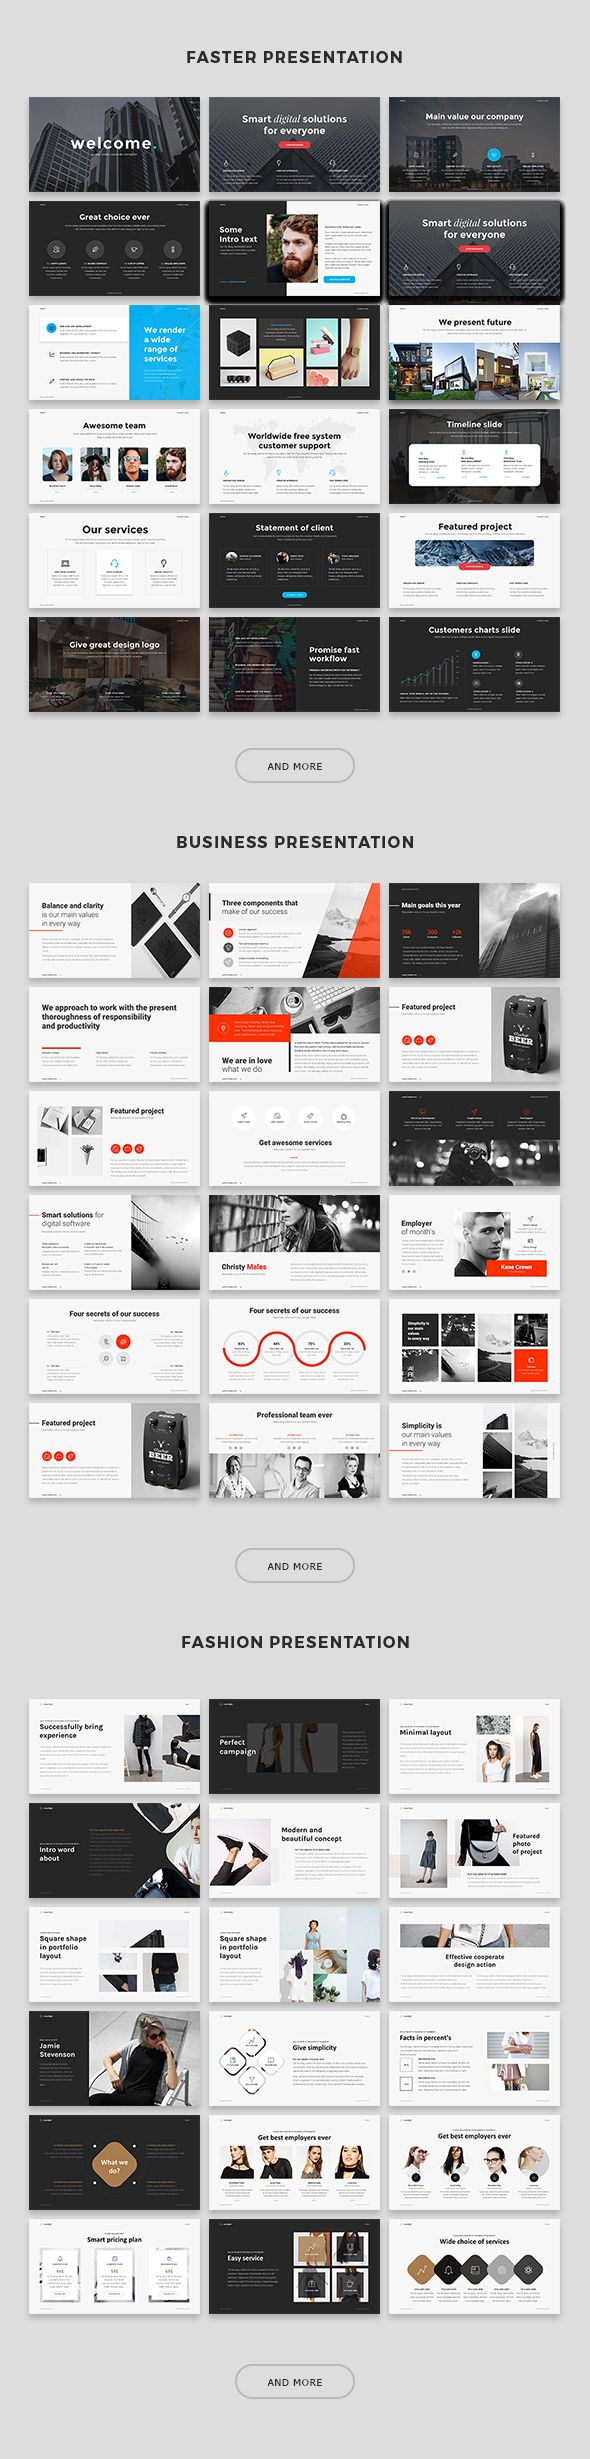 Faster Presentation: Professional, modern and clean presentation template. Features: PowerPoint Template Unique 80 Slides Image Placeholder Format 1920×1080 (full hd) Animation and Transition...